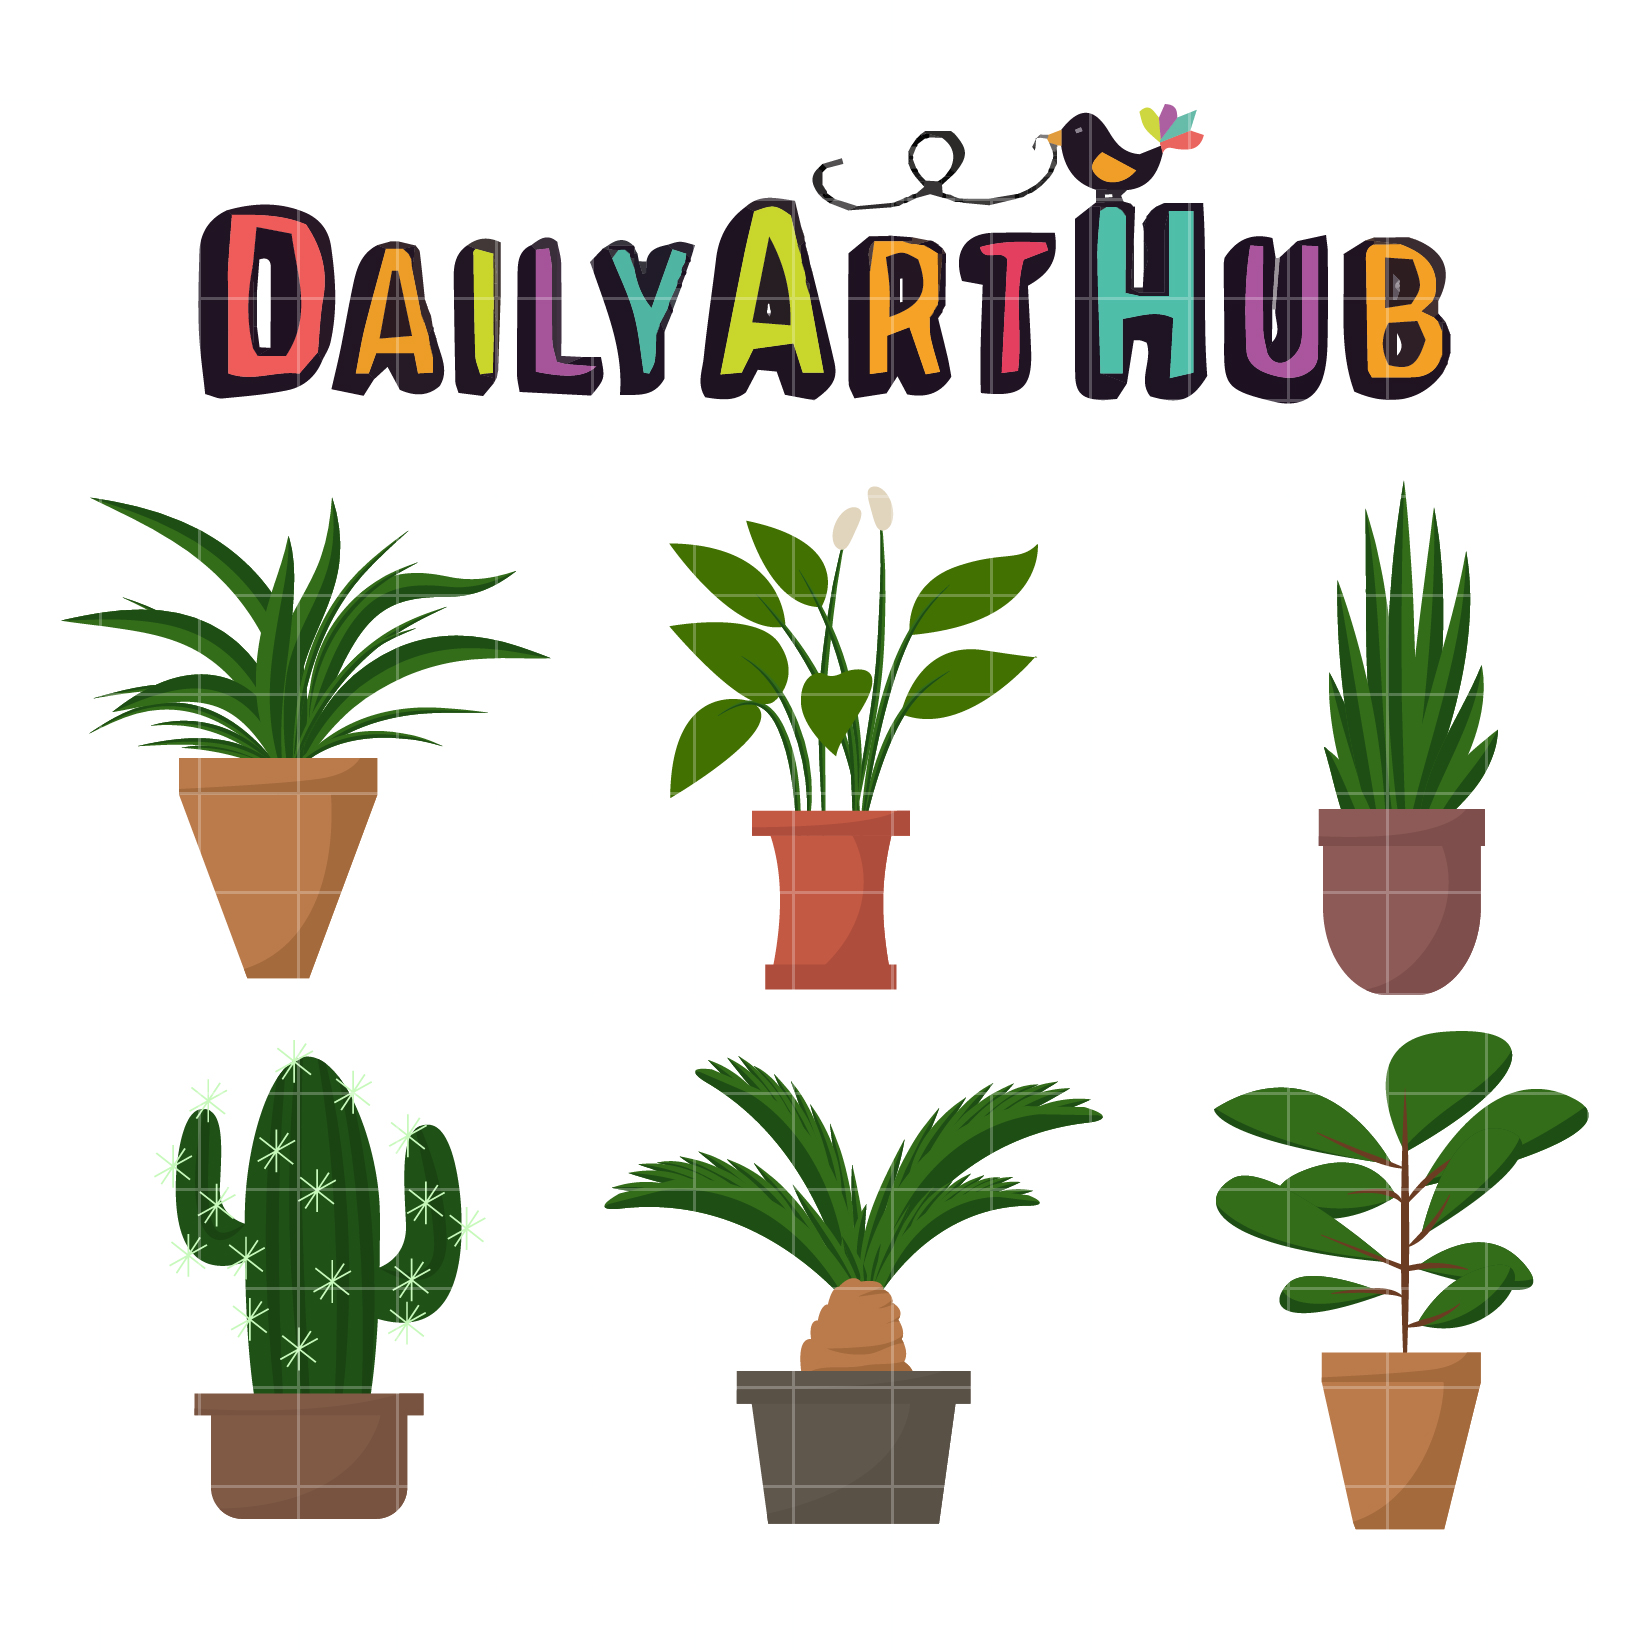 Decorative House Plants Clip Art Set Daily Art Hub Free Clip